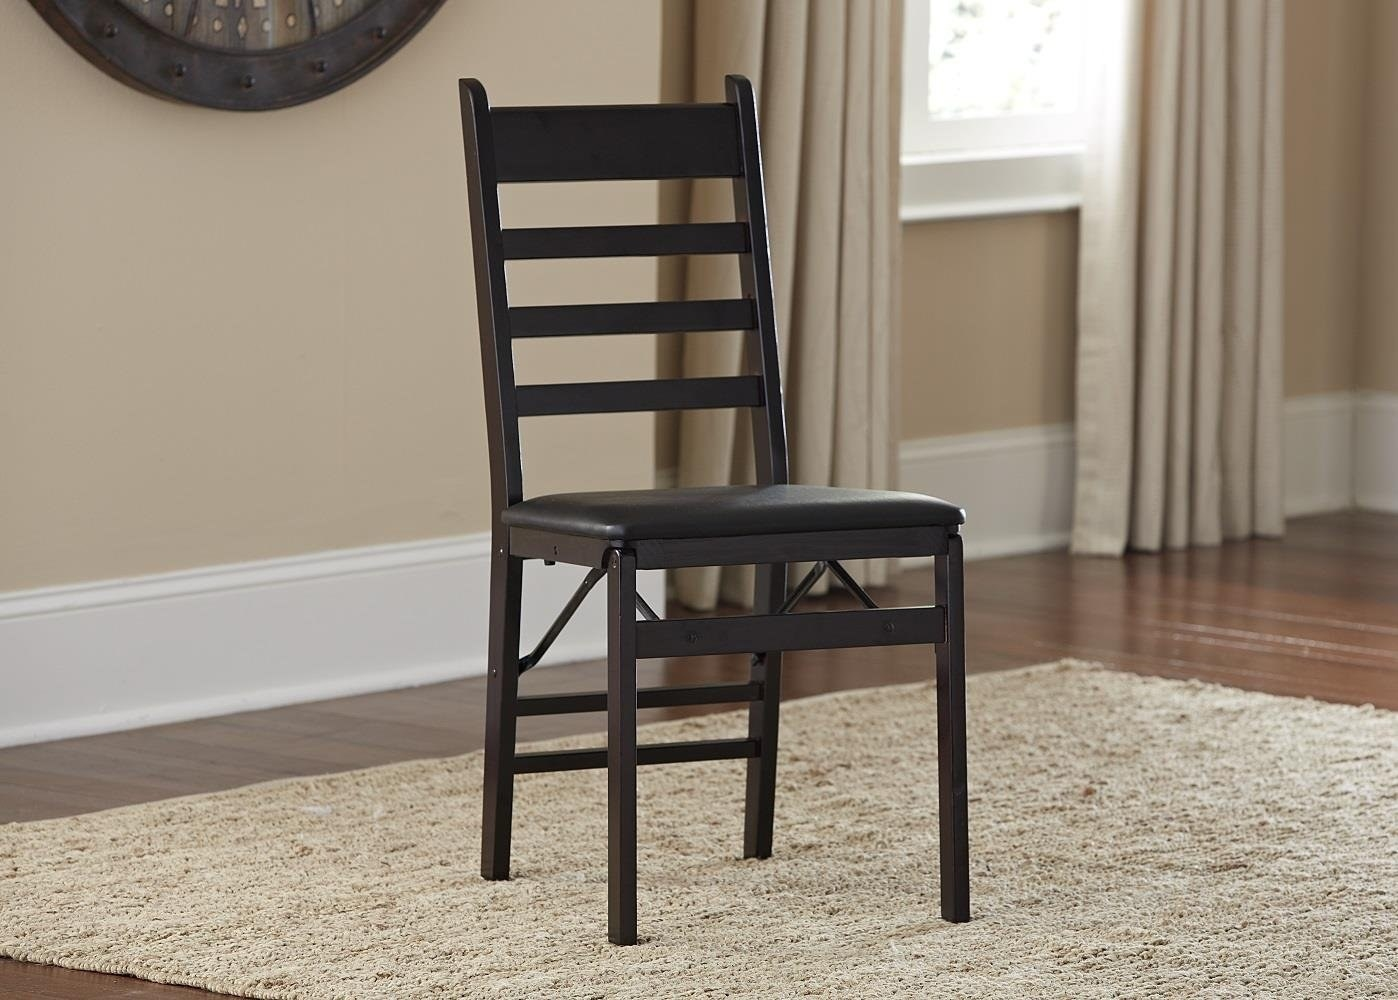 The chair in brown with a ladder-style back in a room